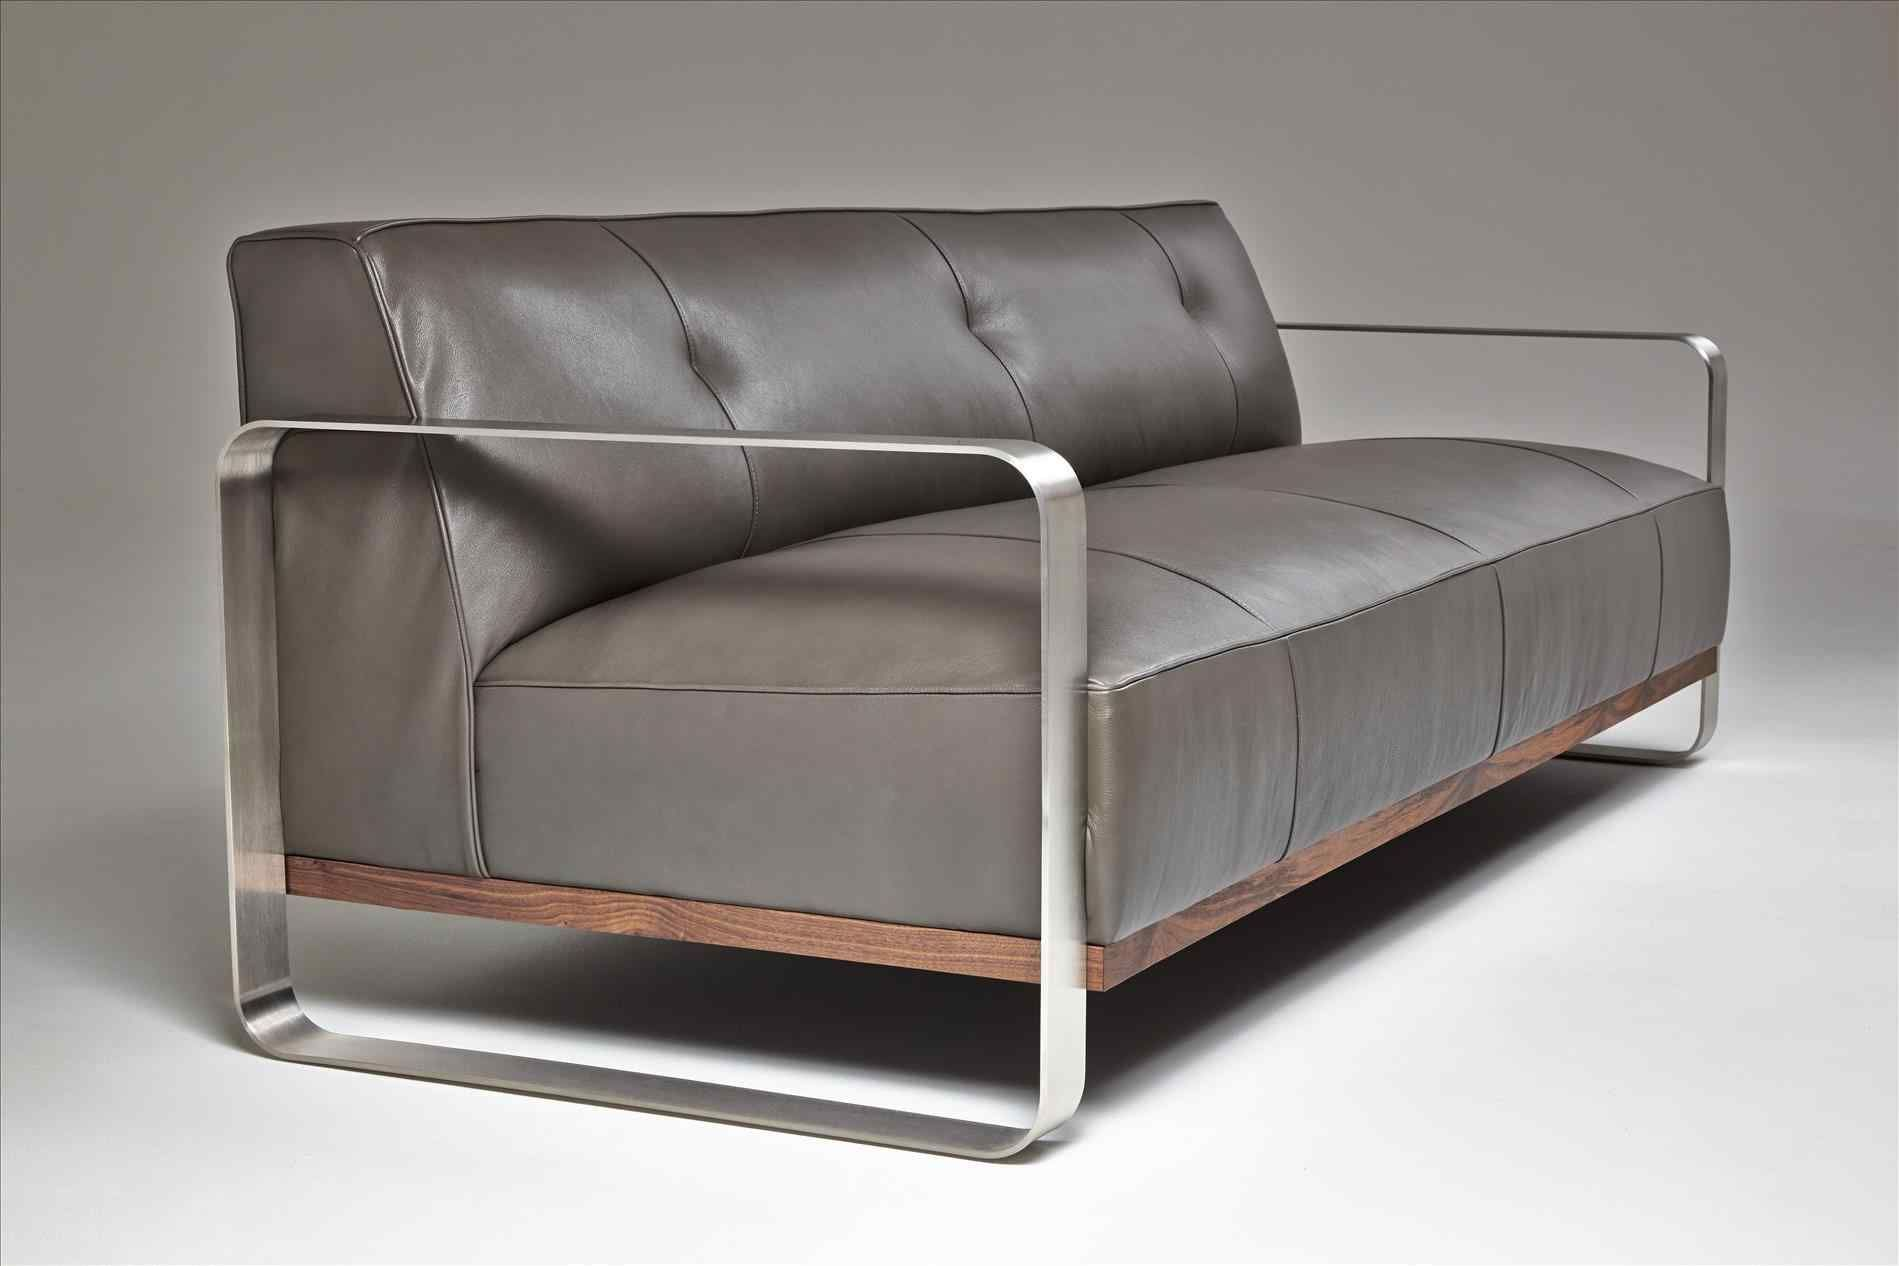 Leather Sleeper Sofa Reviews Black Bed Youtube Review Book Of Stefanie Review  American Leather Sleeper Sofa